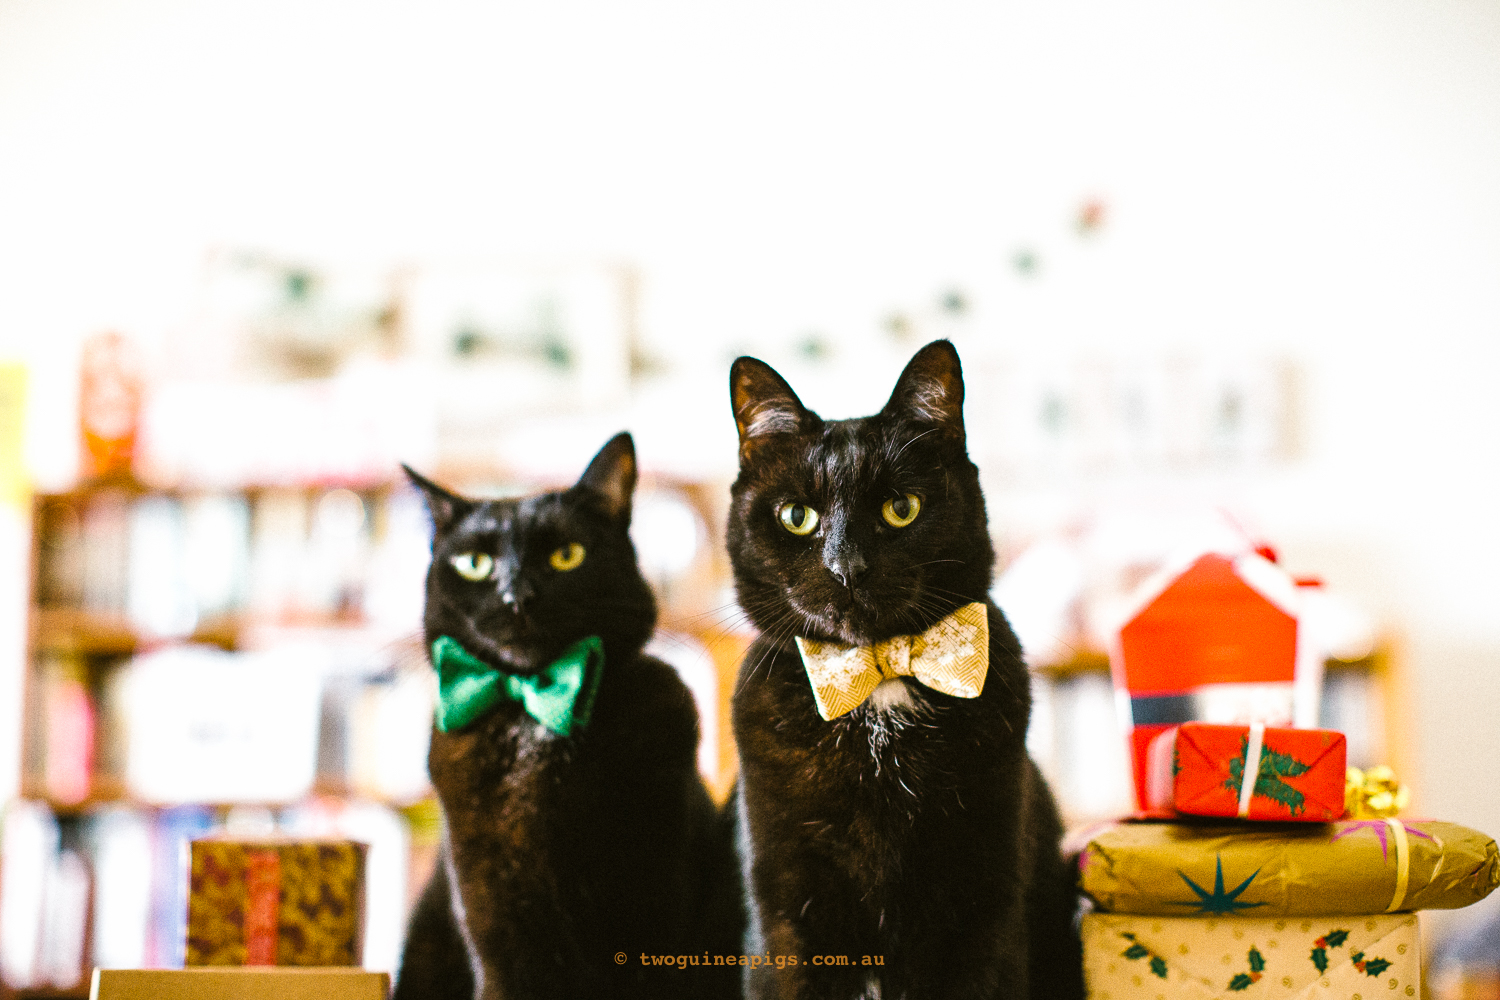 twoguineapigs_pet_photography_blackcats_happy_christmas_red_ribbons_christmas_morning_black_cats_mrbig_pf_behind-the-scenes_catinberlin_bowties